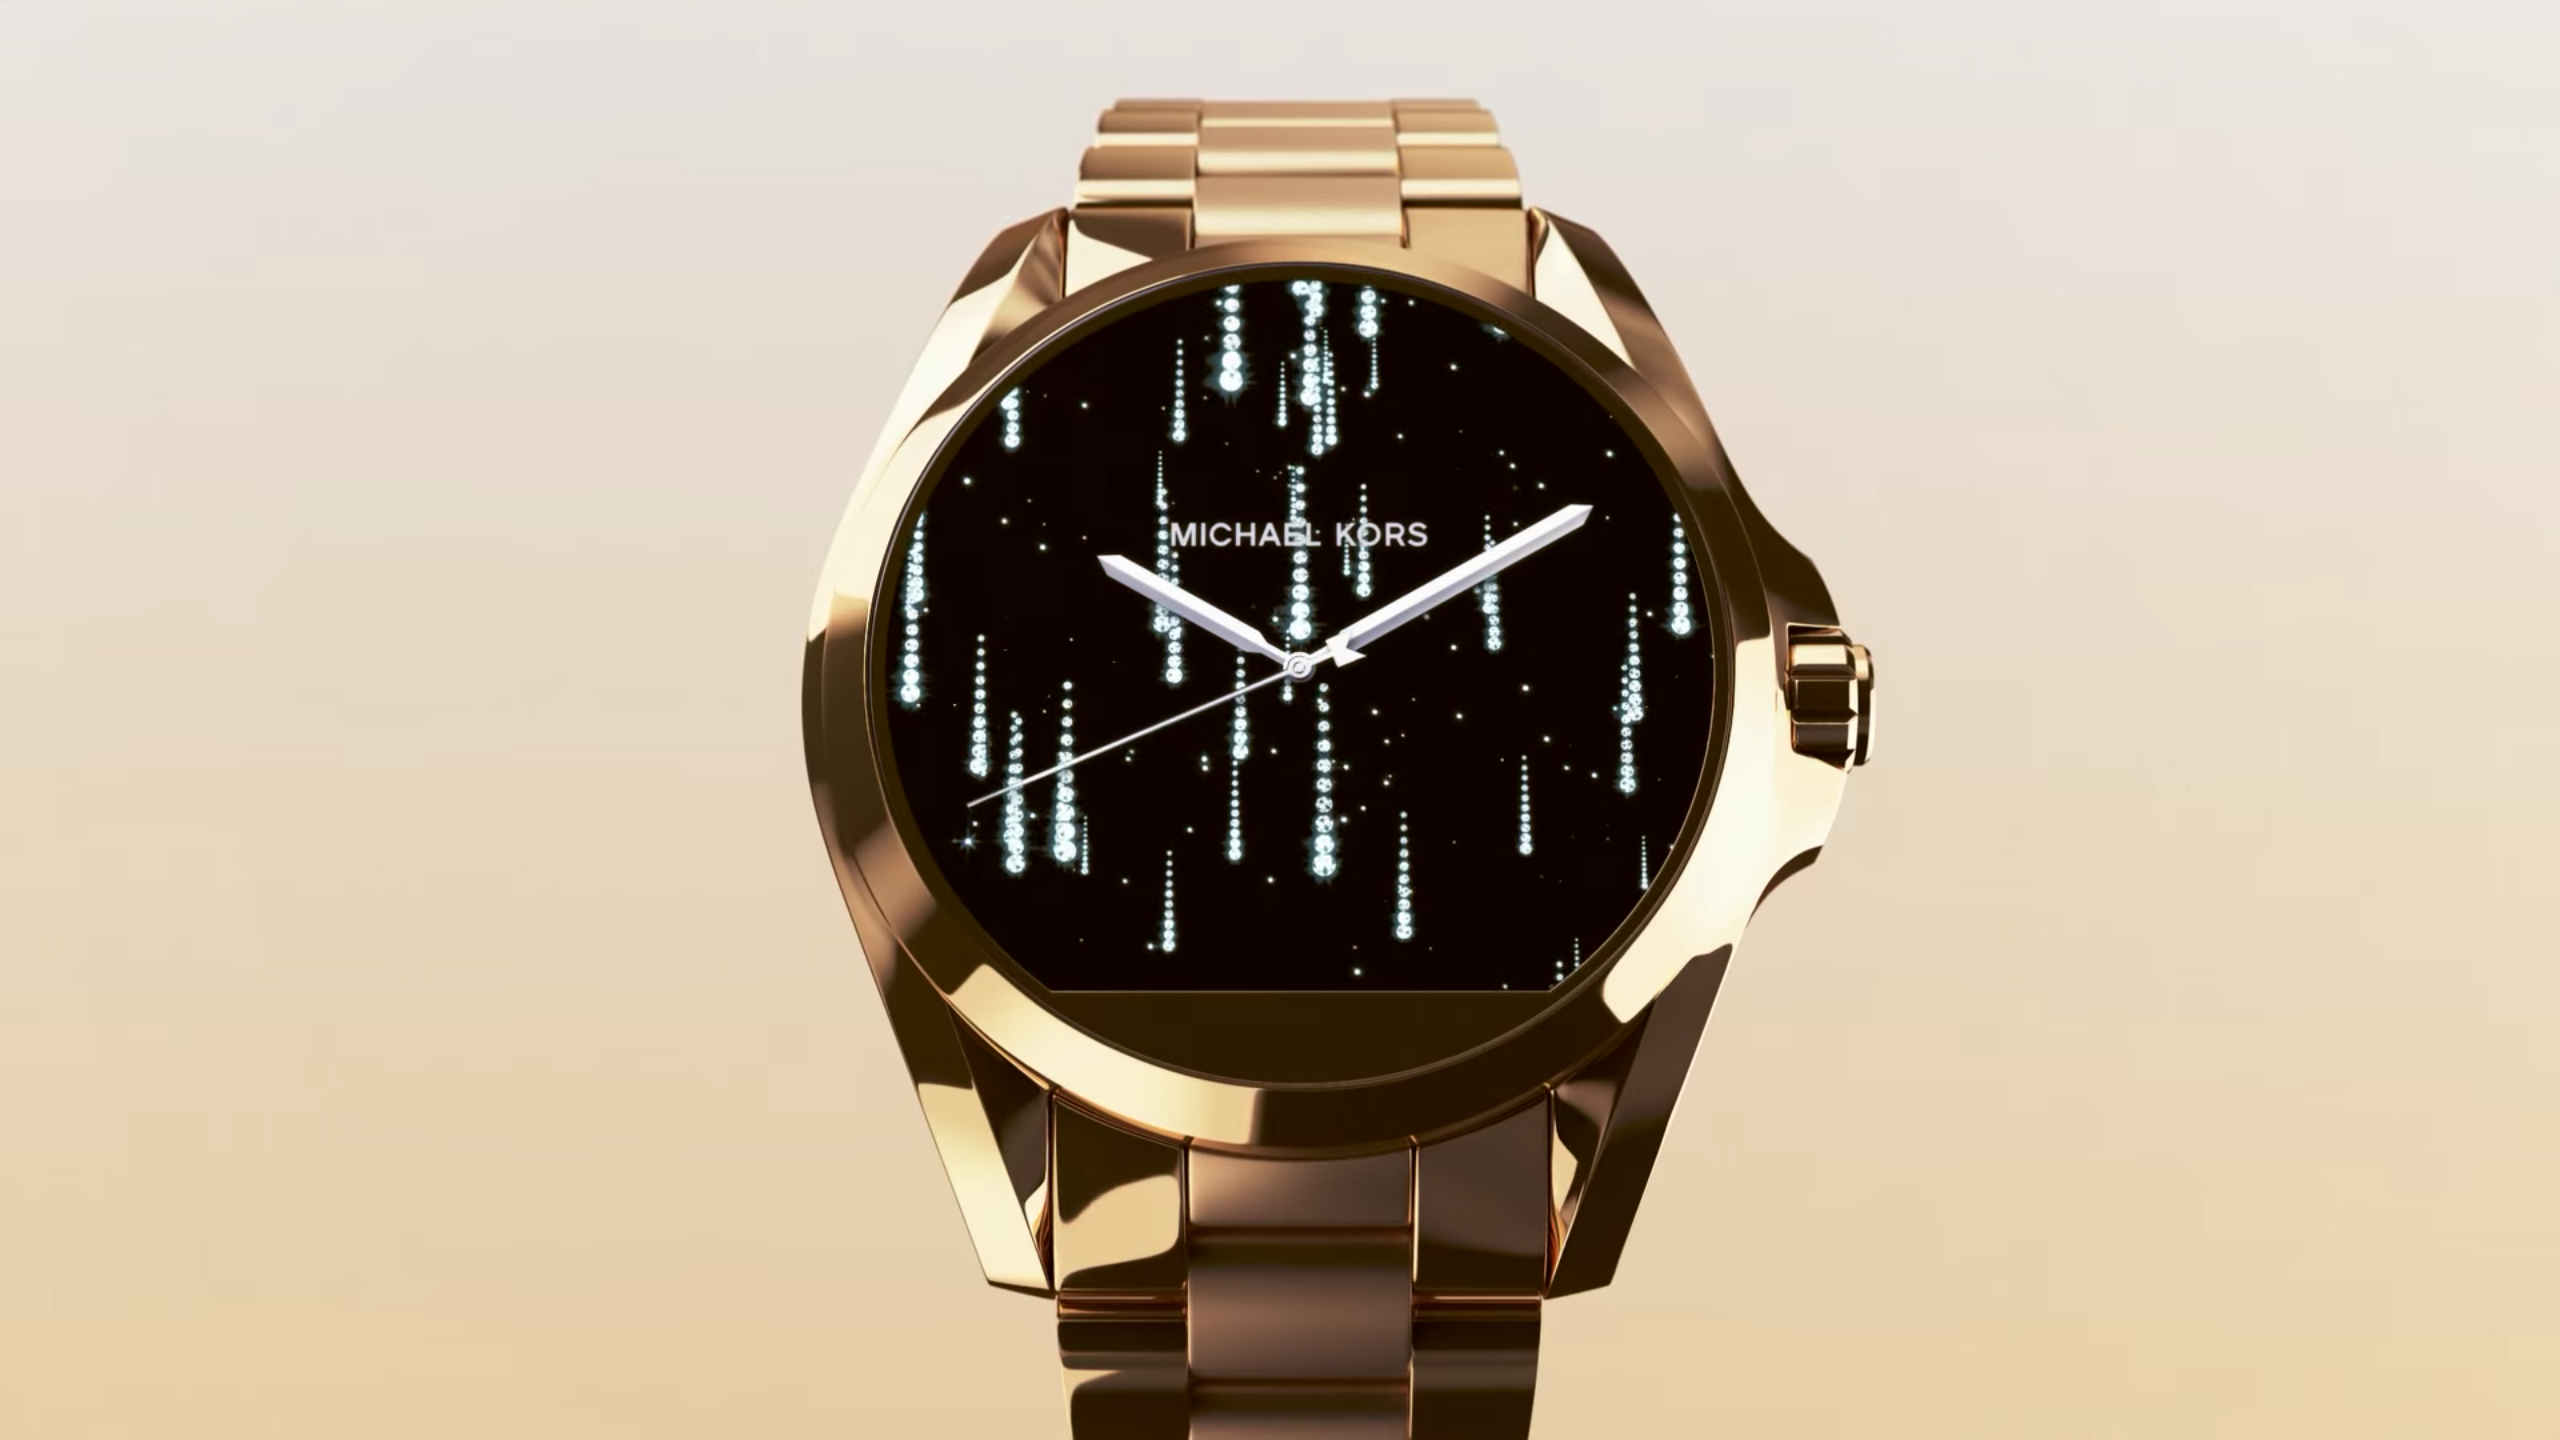 The Top 5 High End SmartWatches Compared Michael Kors Smart Watch   relojmichaelkorsmujer  relojmichaelkors  reloj  michaelkorsmujer  relojes   relojmujer ... 39a704eb91